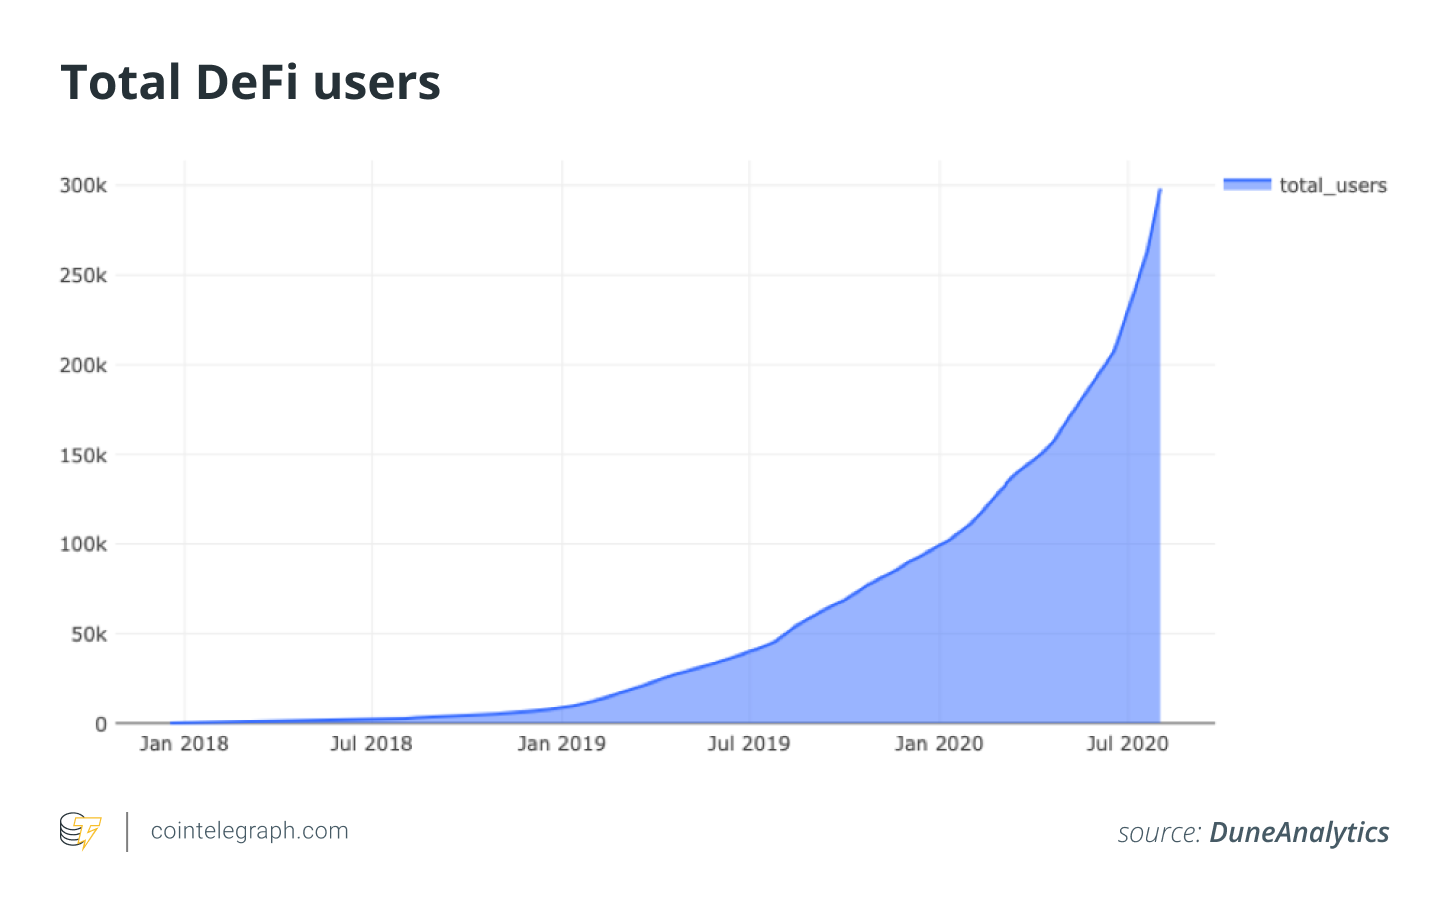 Total DeFi users